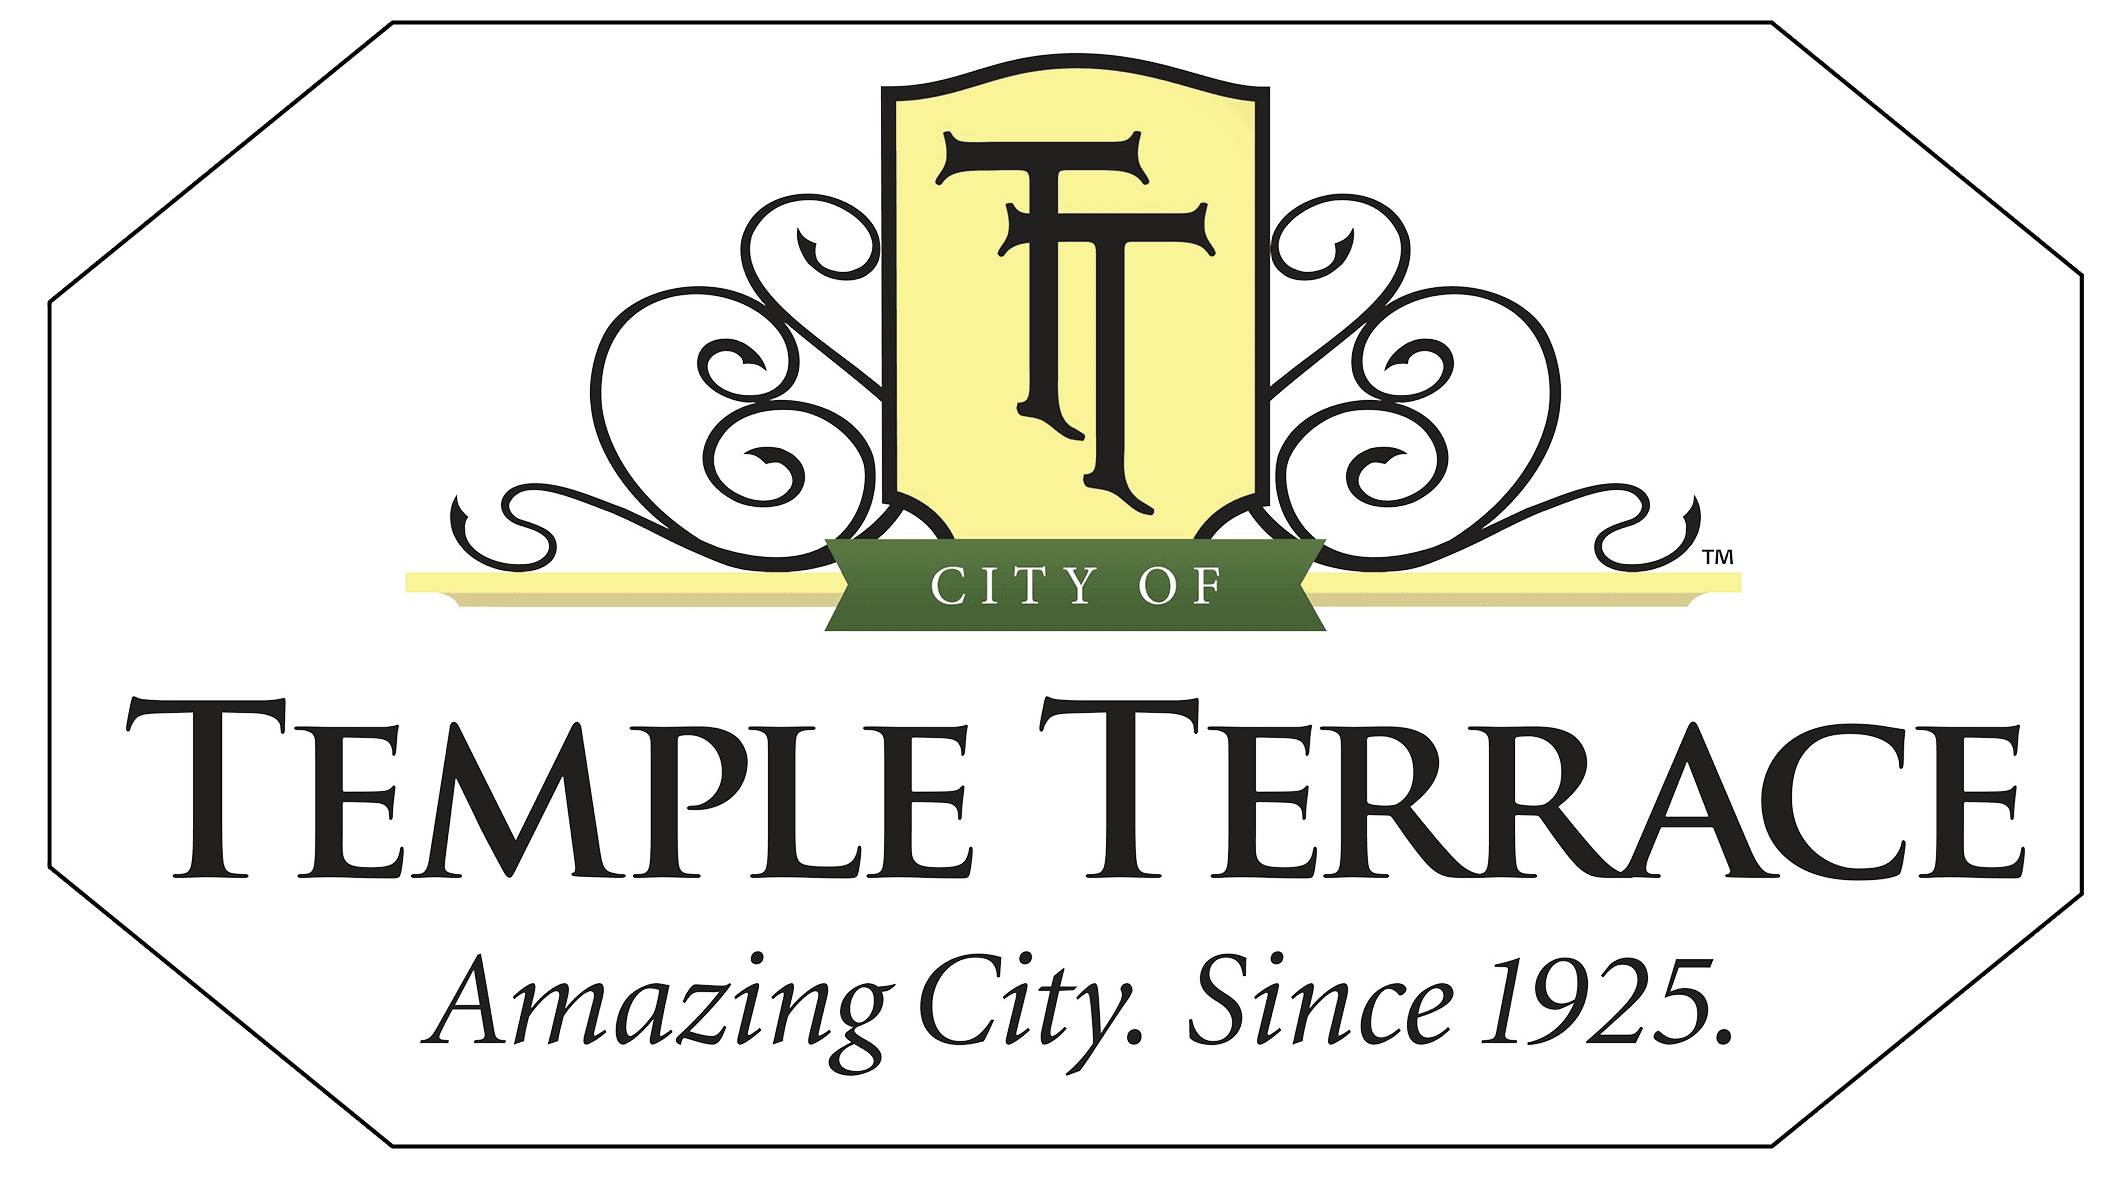 Temple Terrace logo